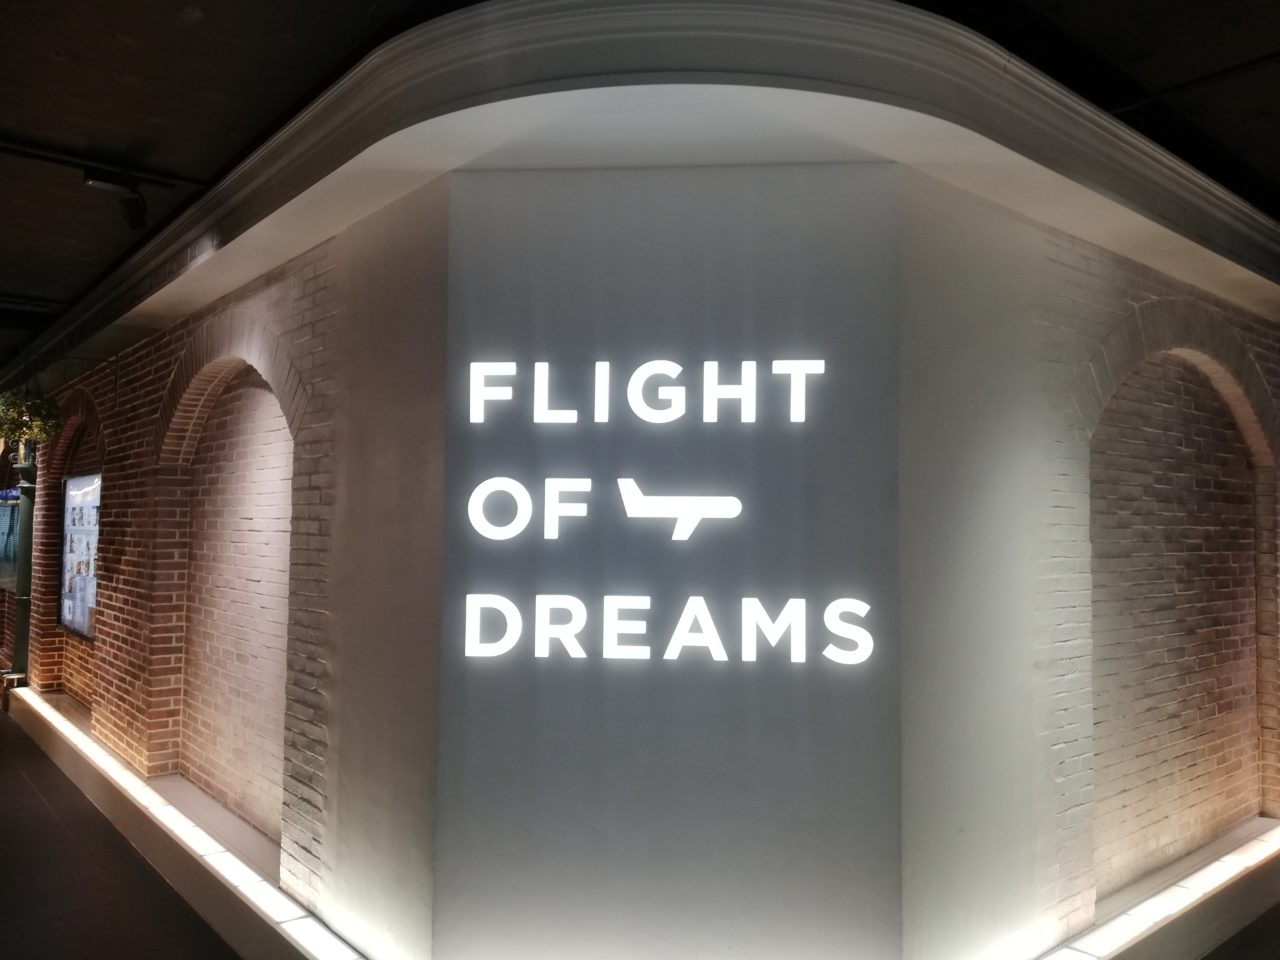 FLIGHT OF DREAMSの入り口